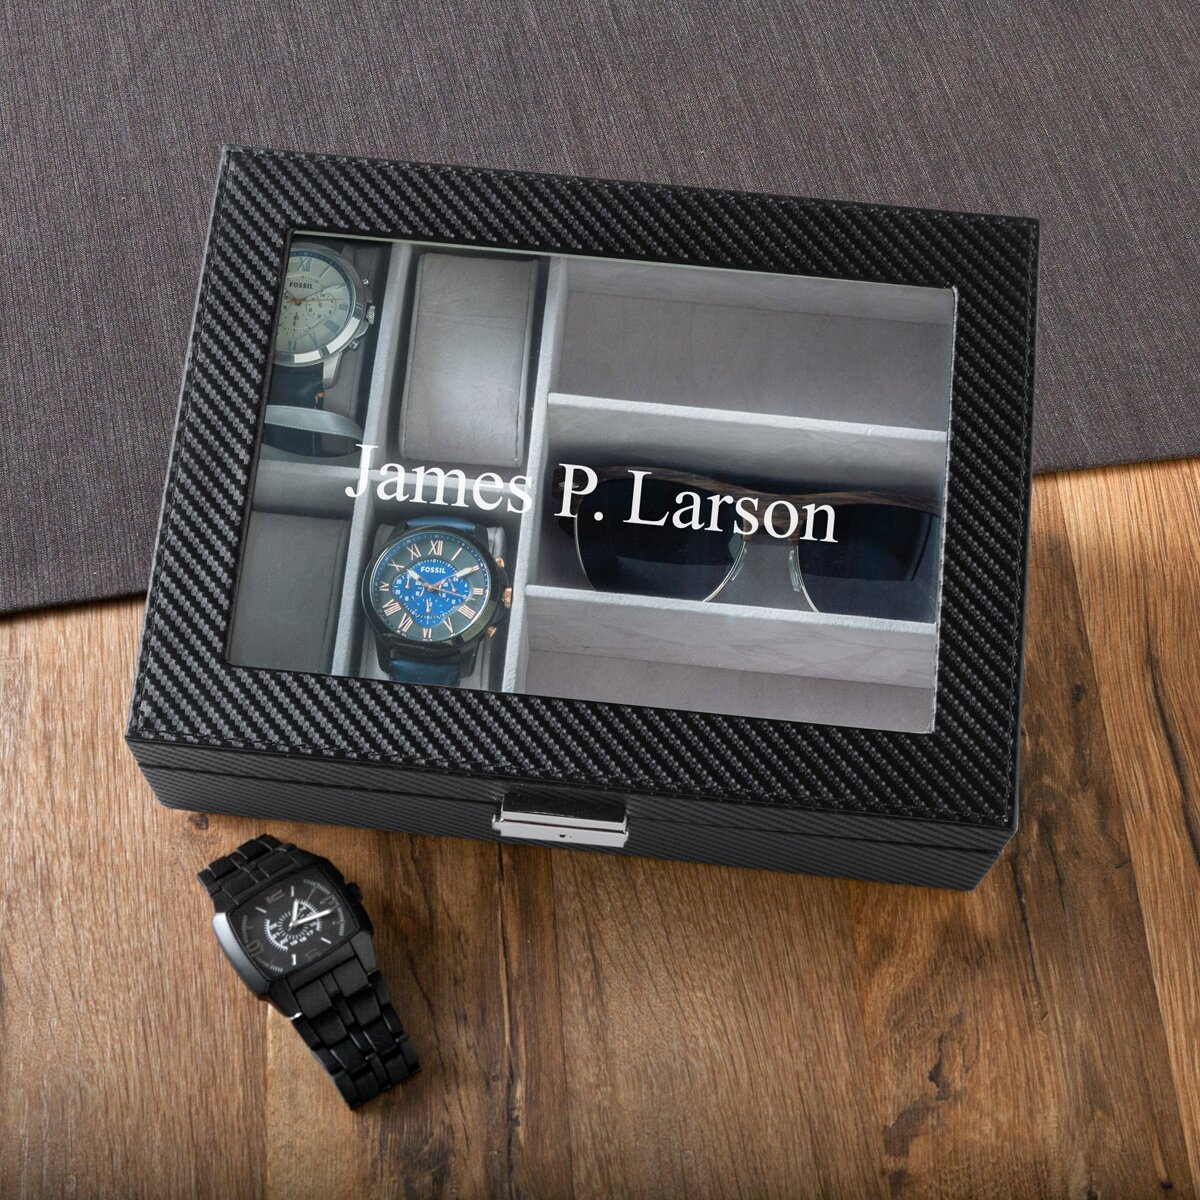 jds personalized gifts personalized men s watch and sunglass box jds personalized gifts personalized men s watch and sunglass box